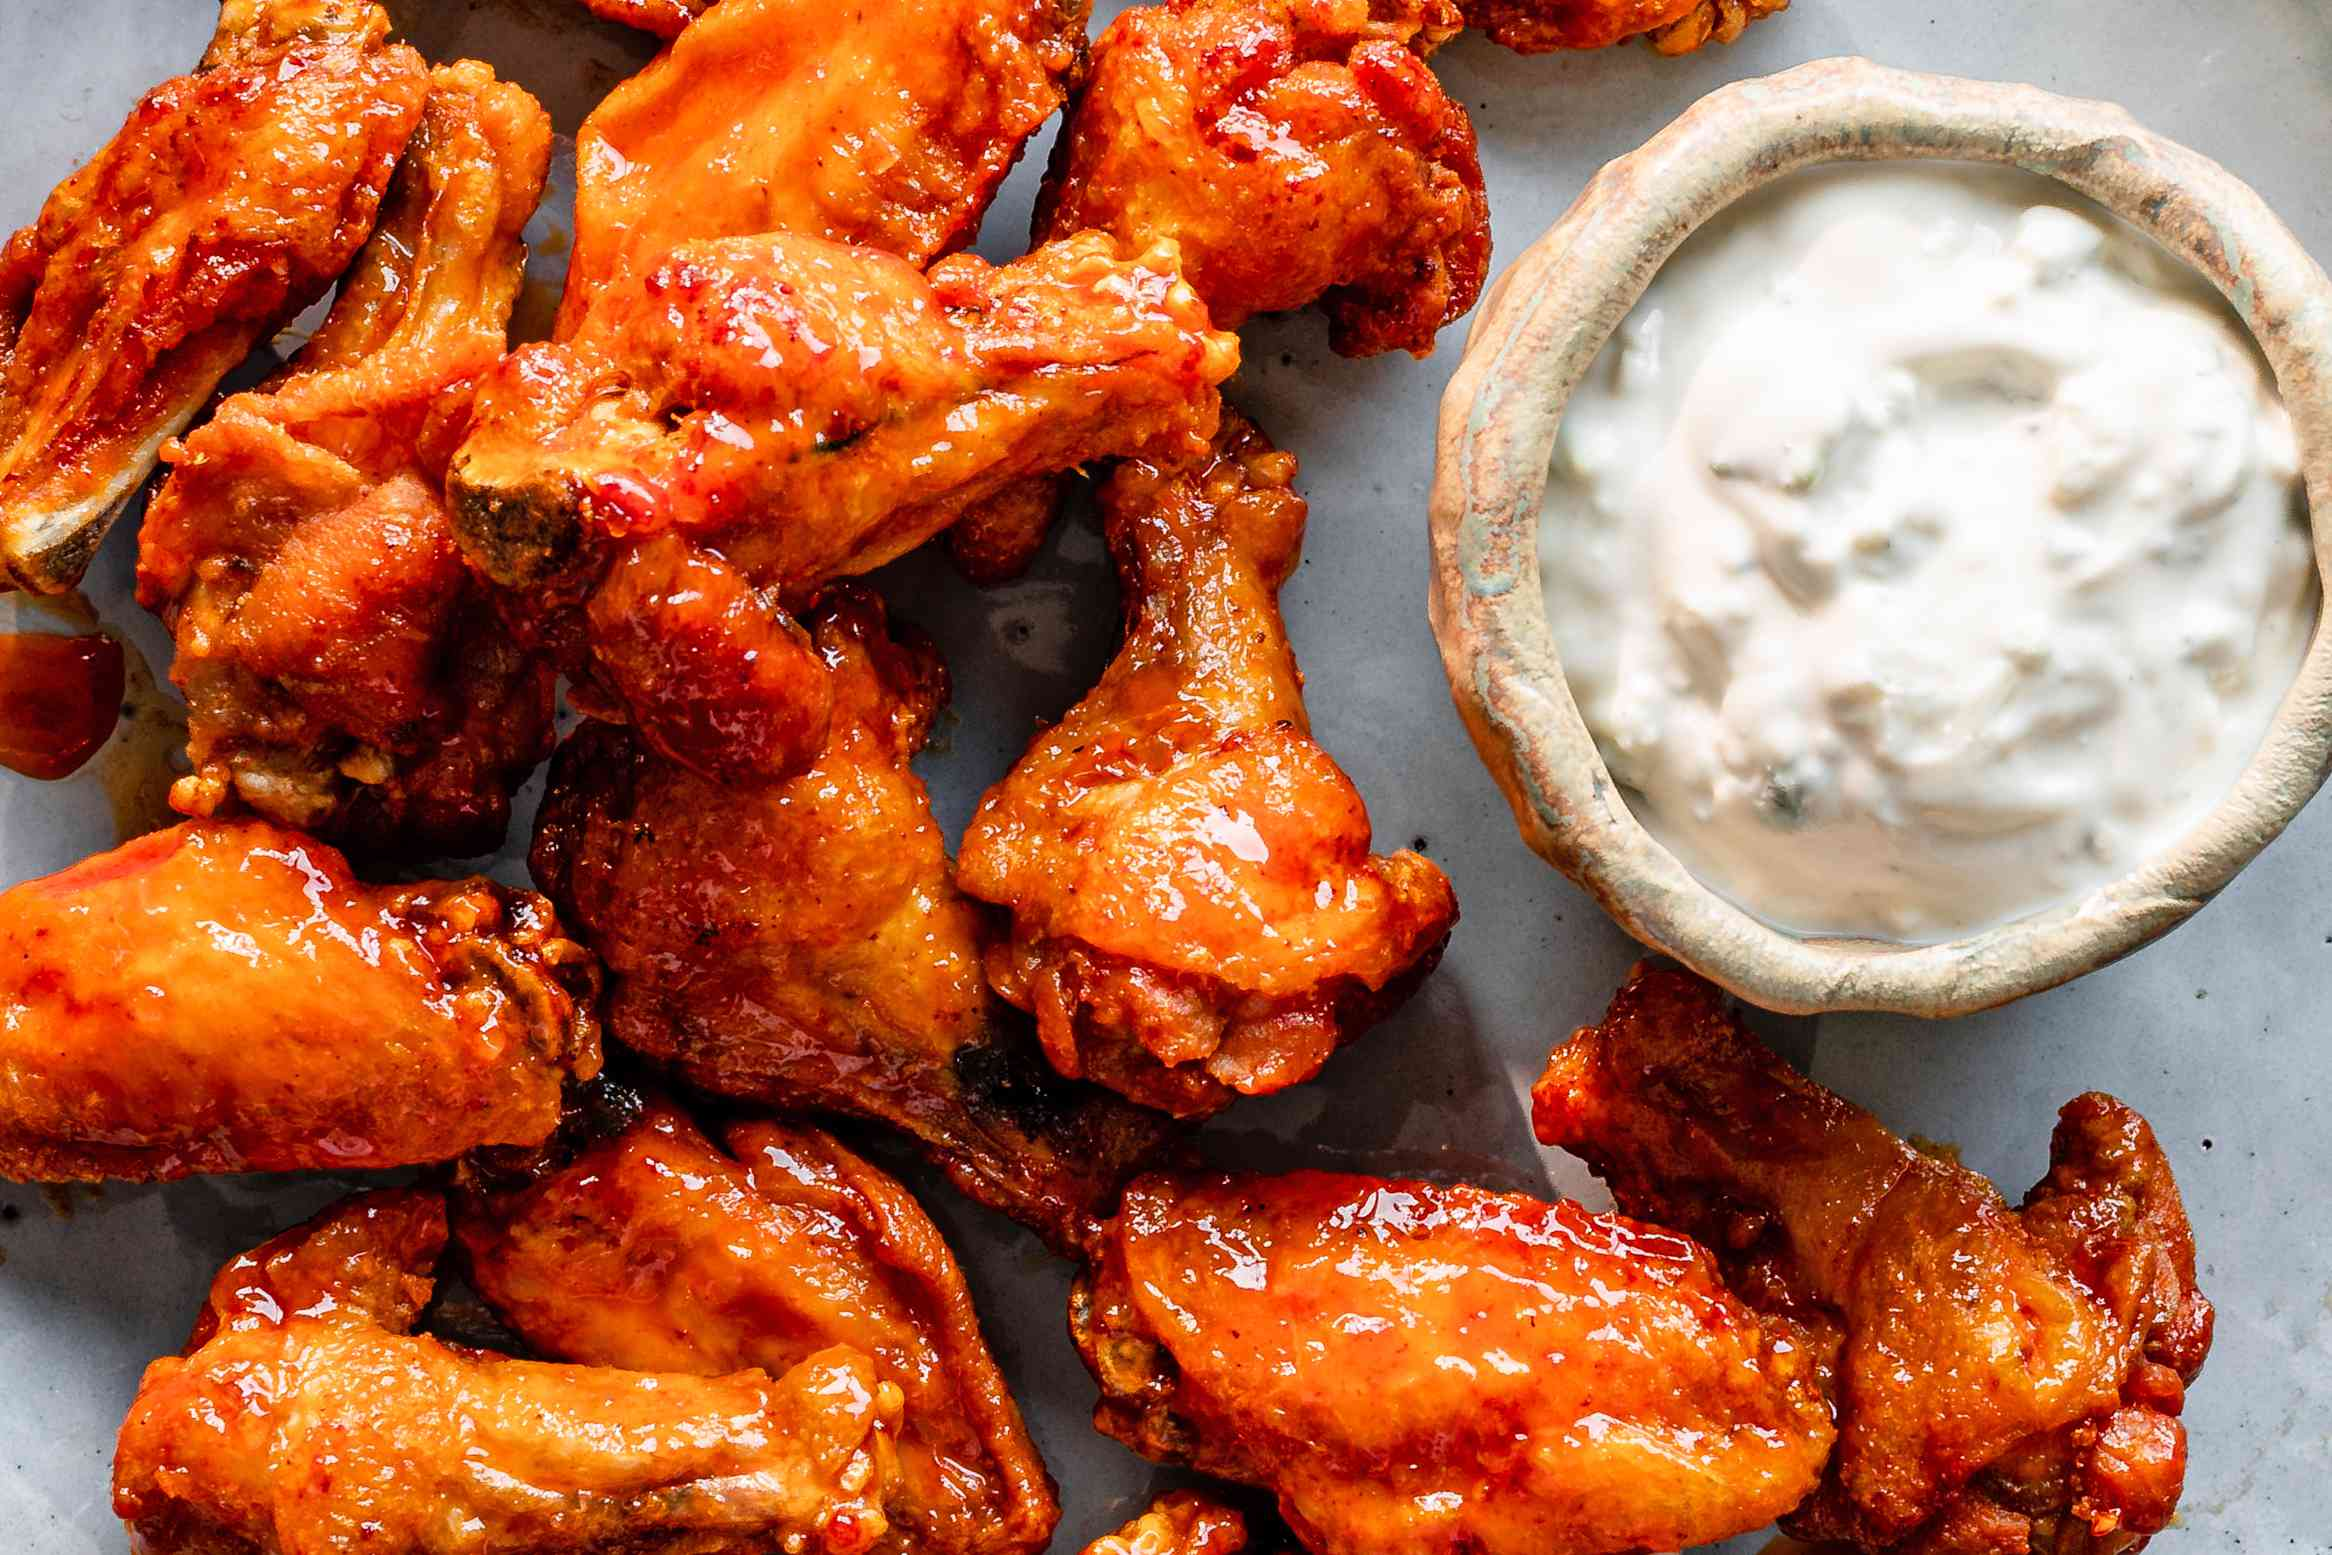 Serve Buffalo wings with blue cheese dressing